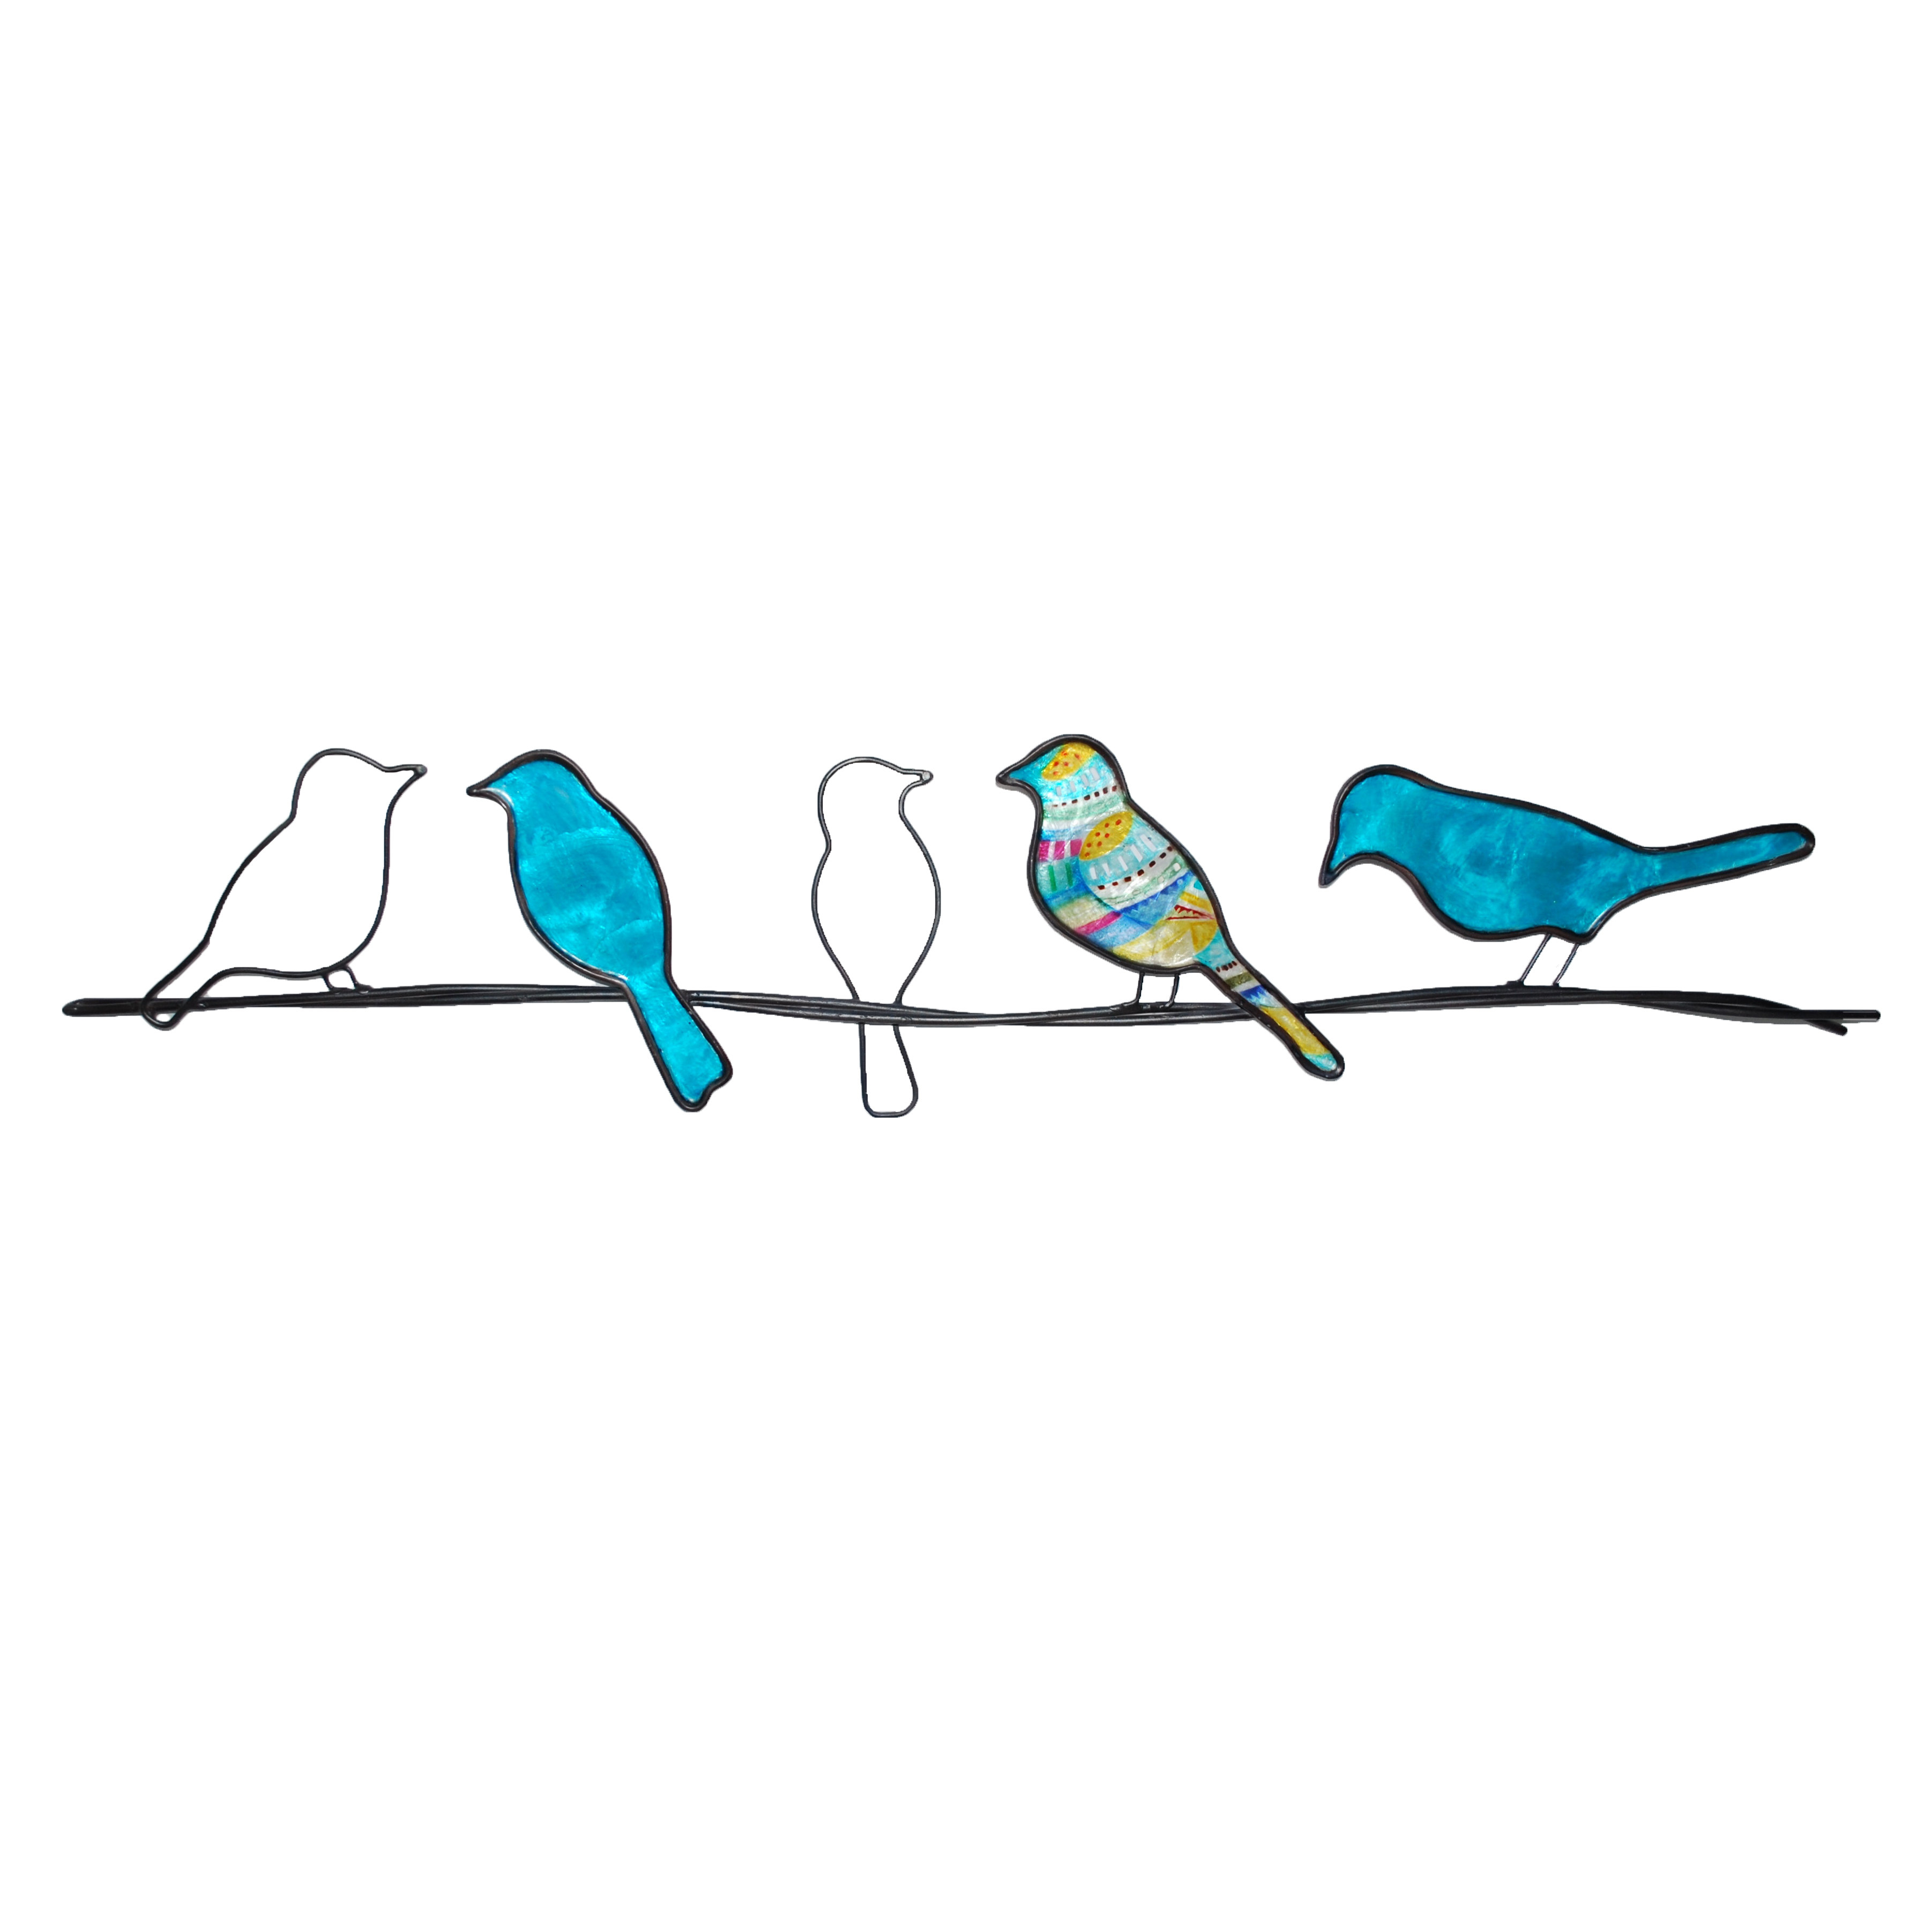 Rioux Birds On A Wire Wall Decor Pertaining To Most Popular Winston Porter Modern Birds On A Wire Wall Décor (Gallery 17 of 20)